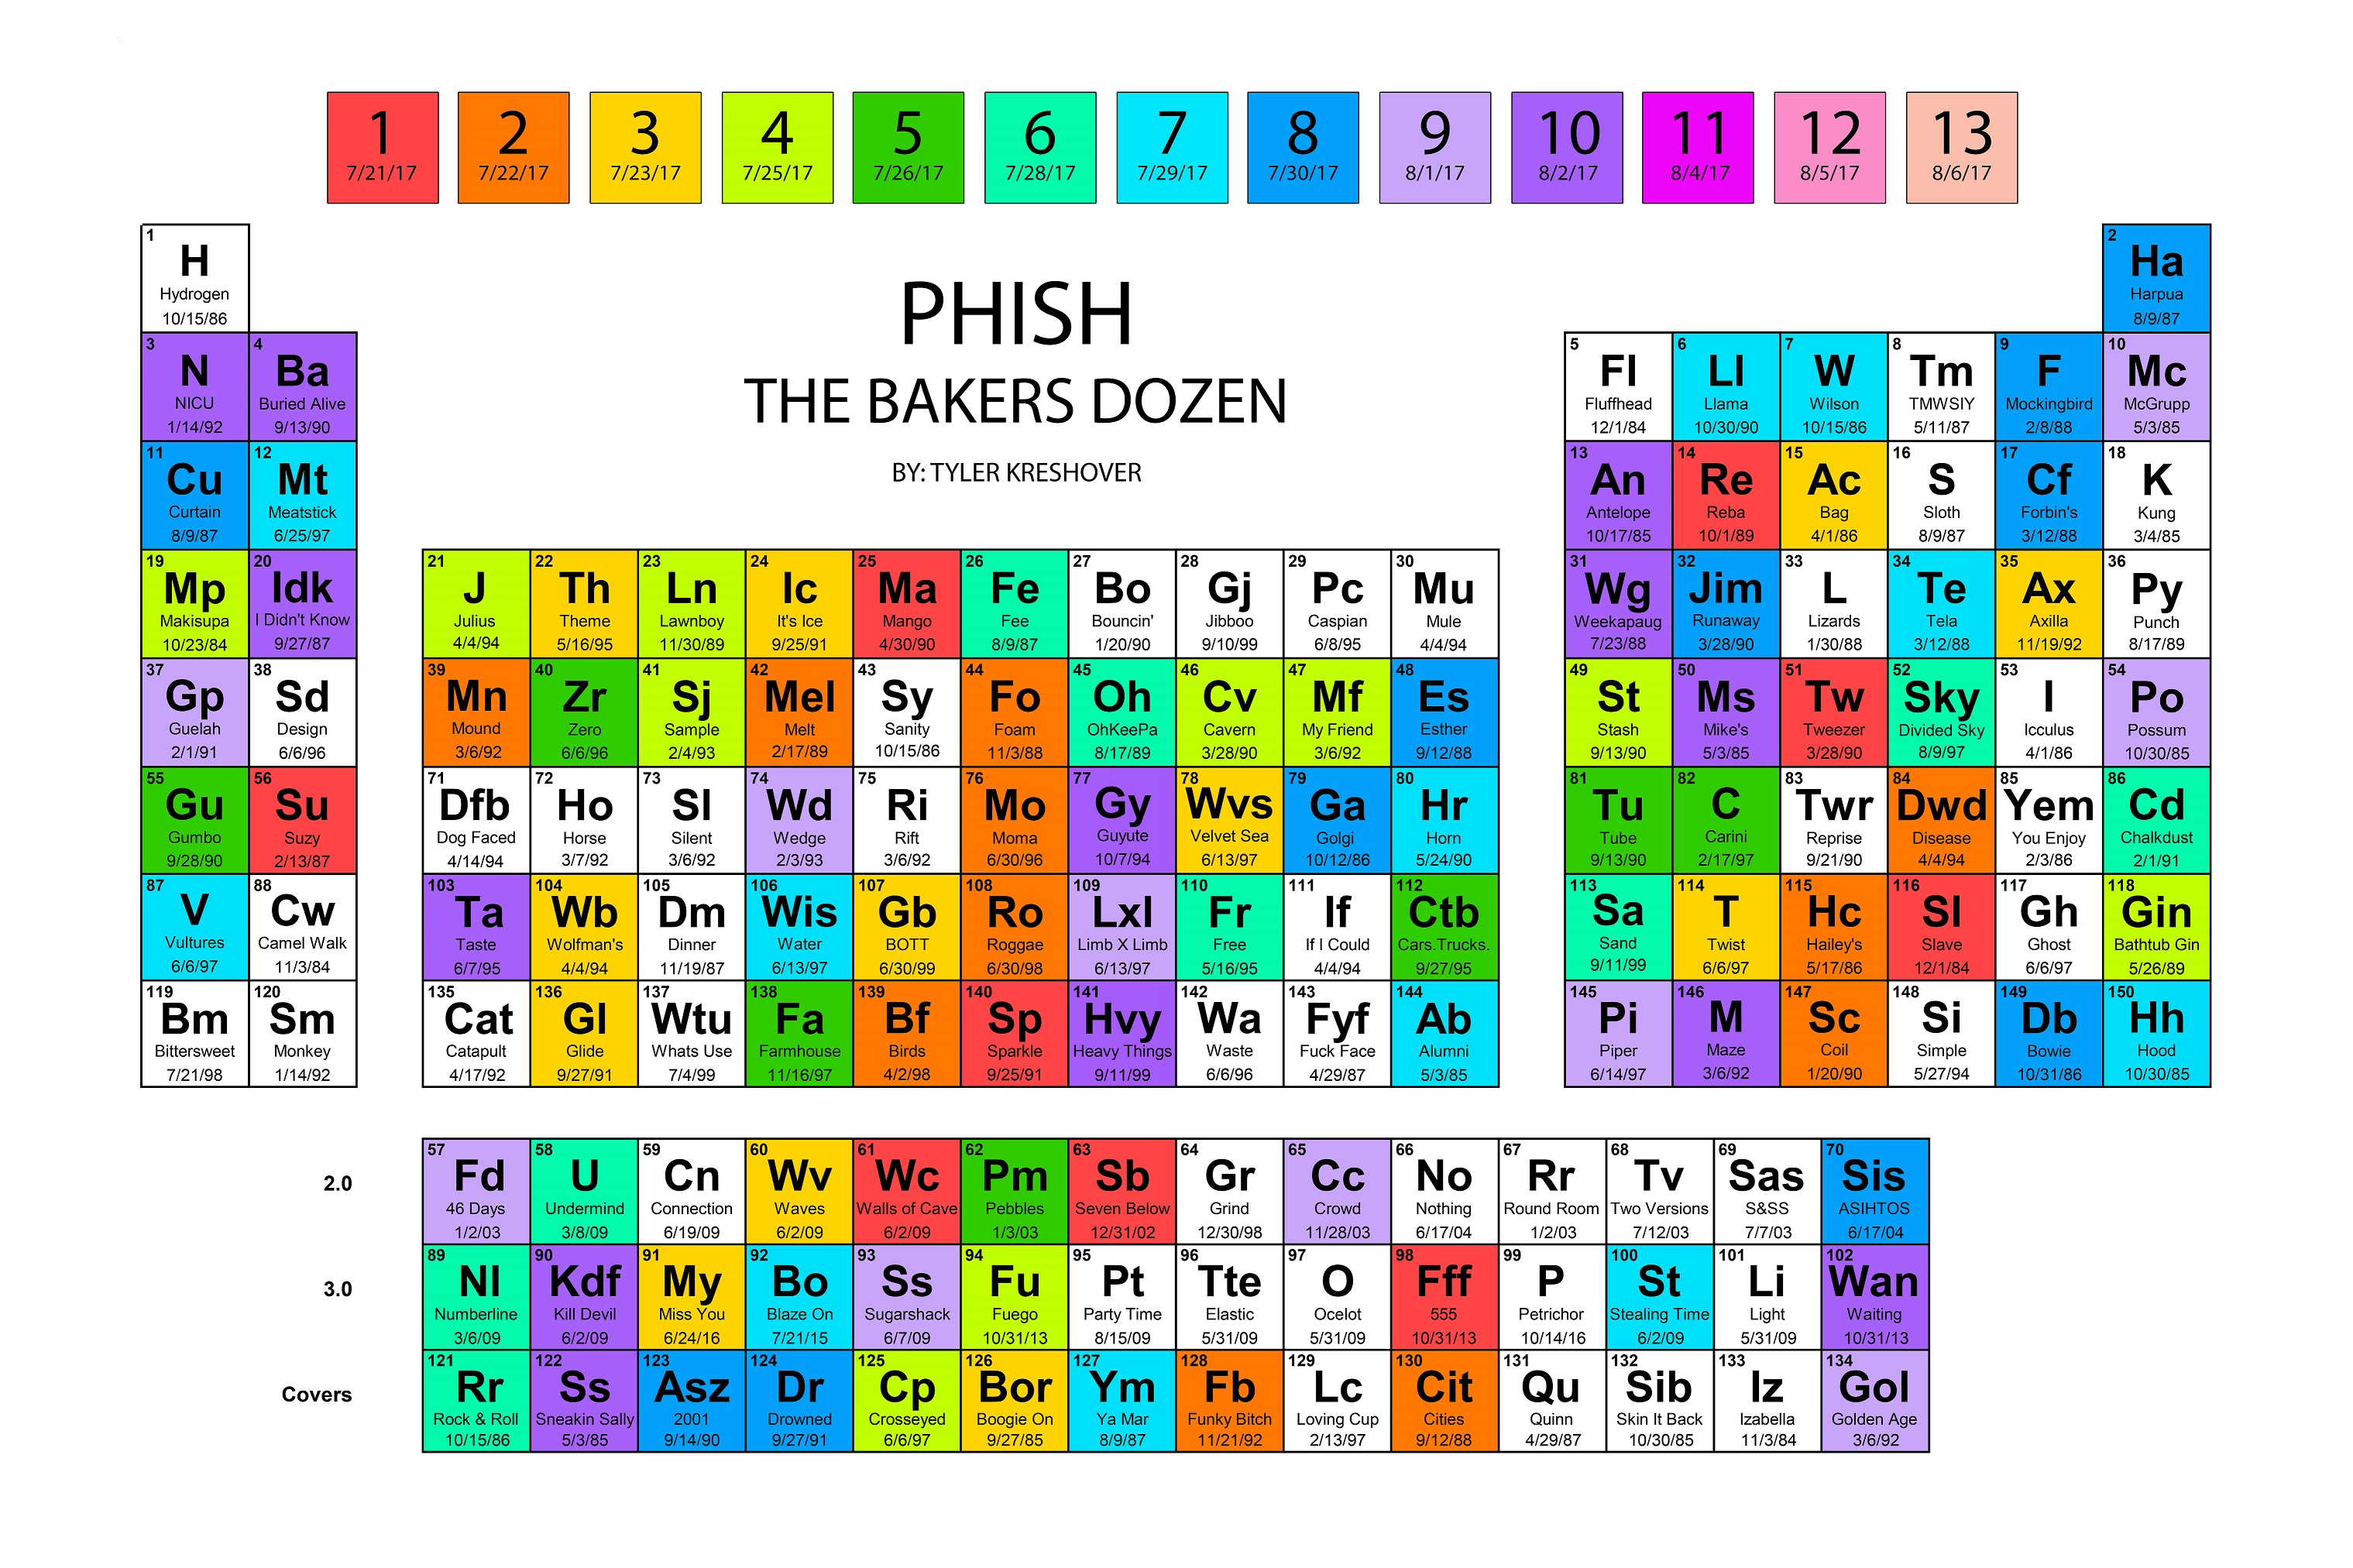 ICYMI Phishy Baker s Dozen Periodic Table Phish